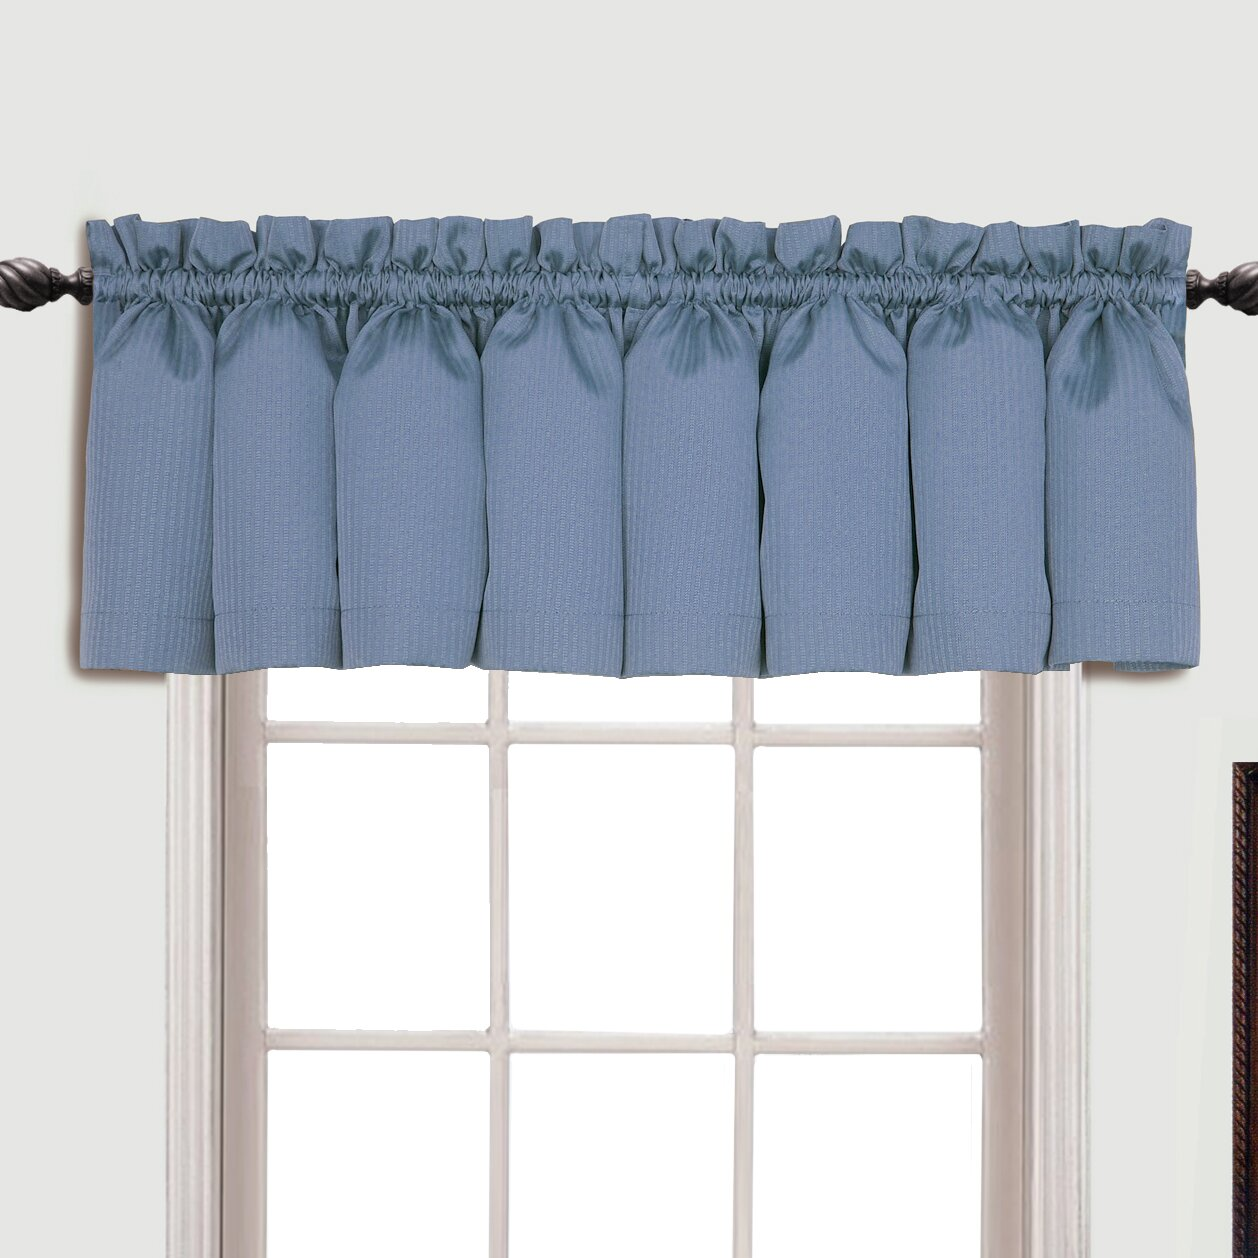 Charlton Home Suzanne Rod Pocket Tailored 54 Curtain Valance Reviews Wayfair